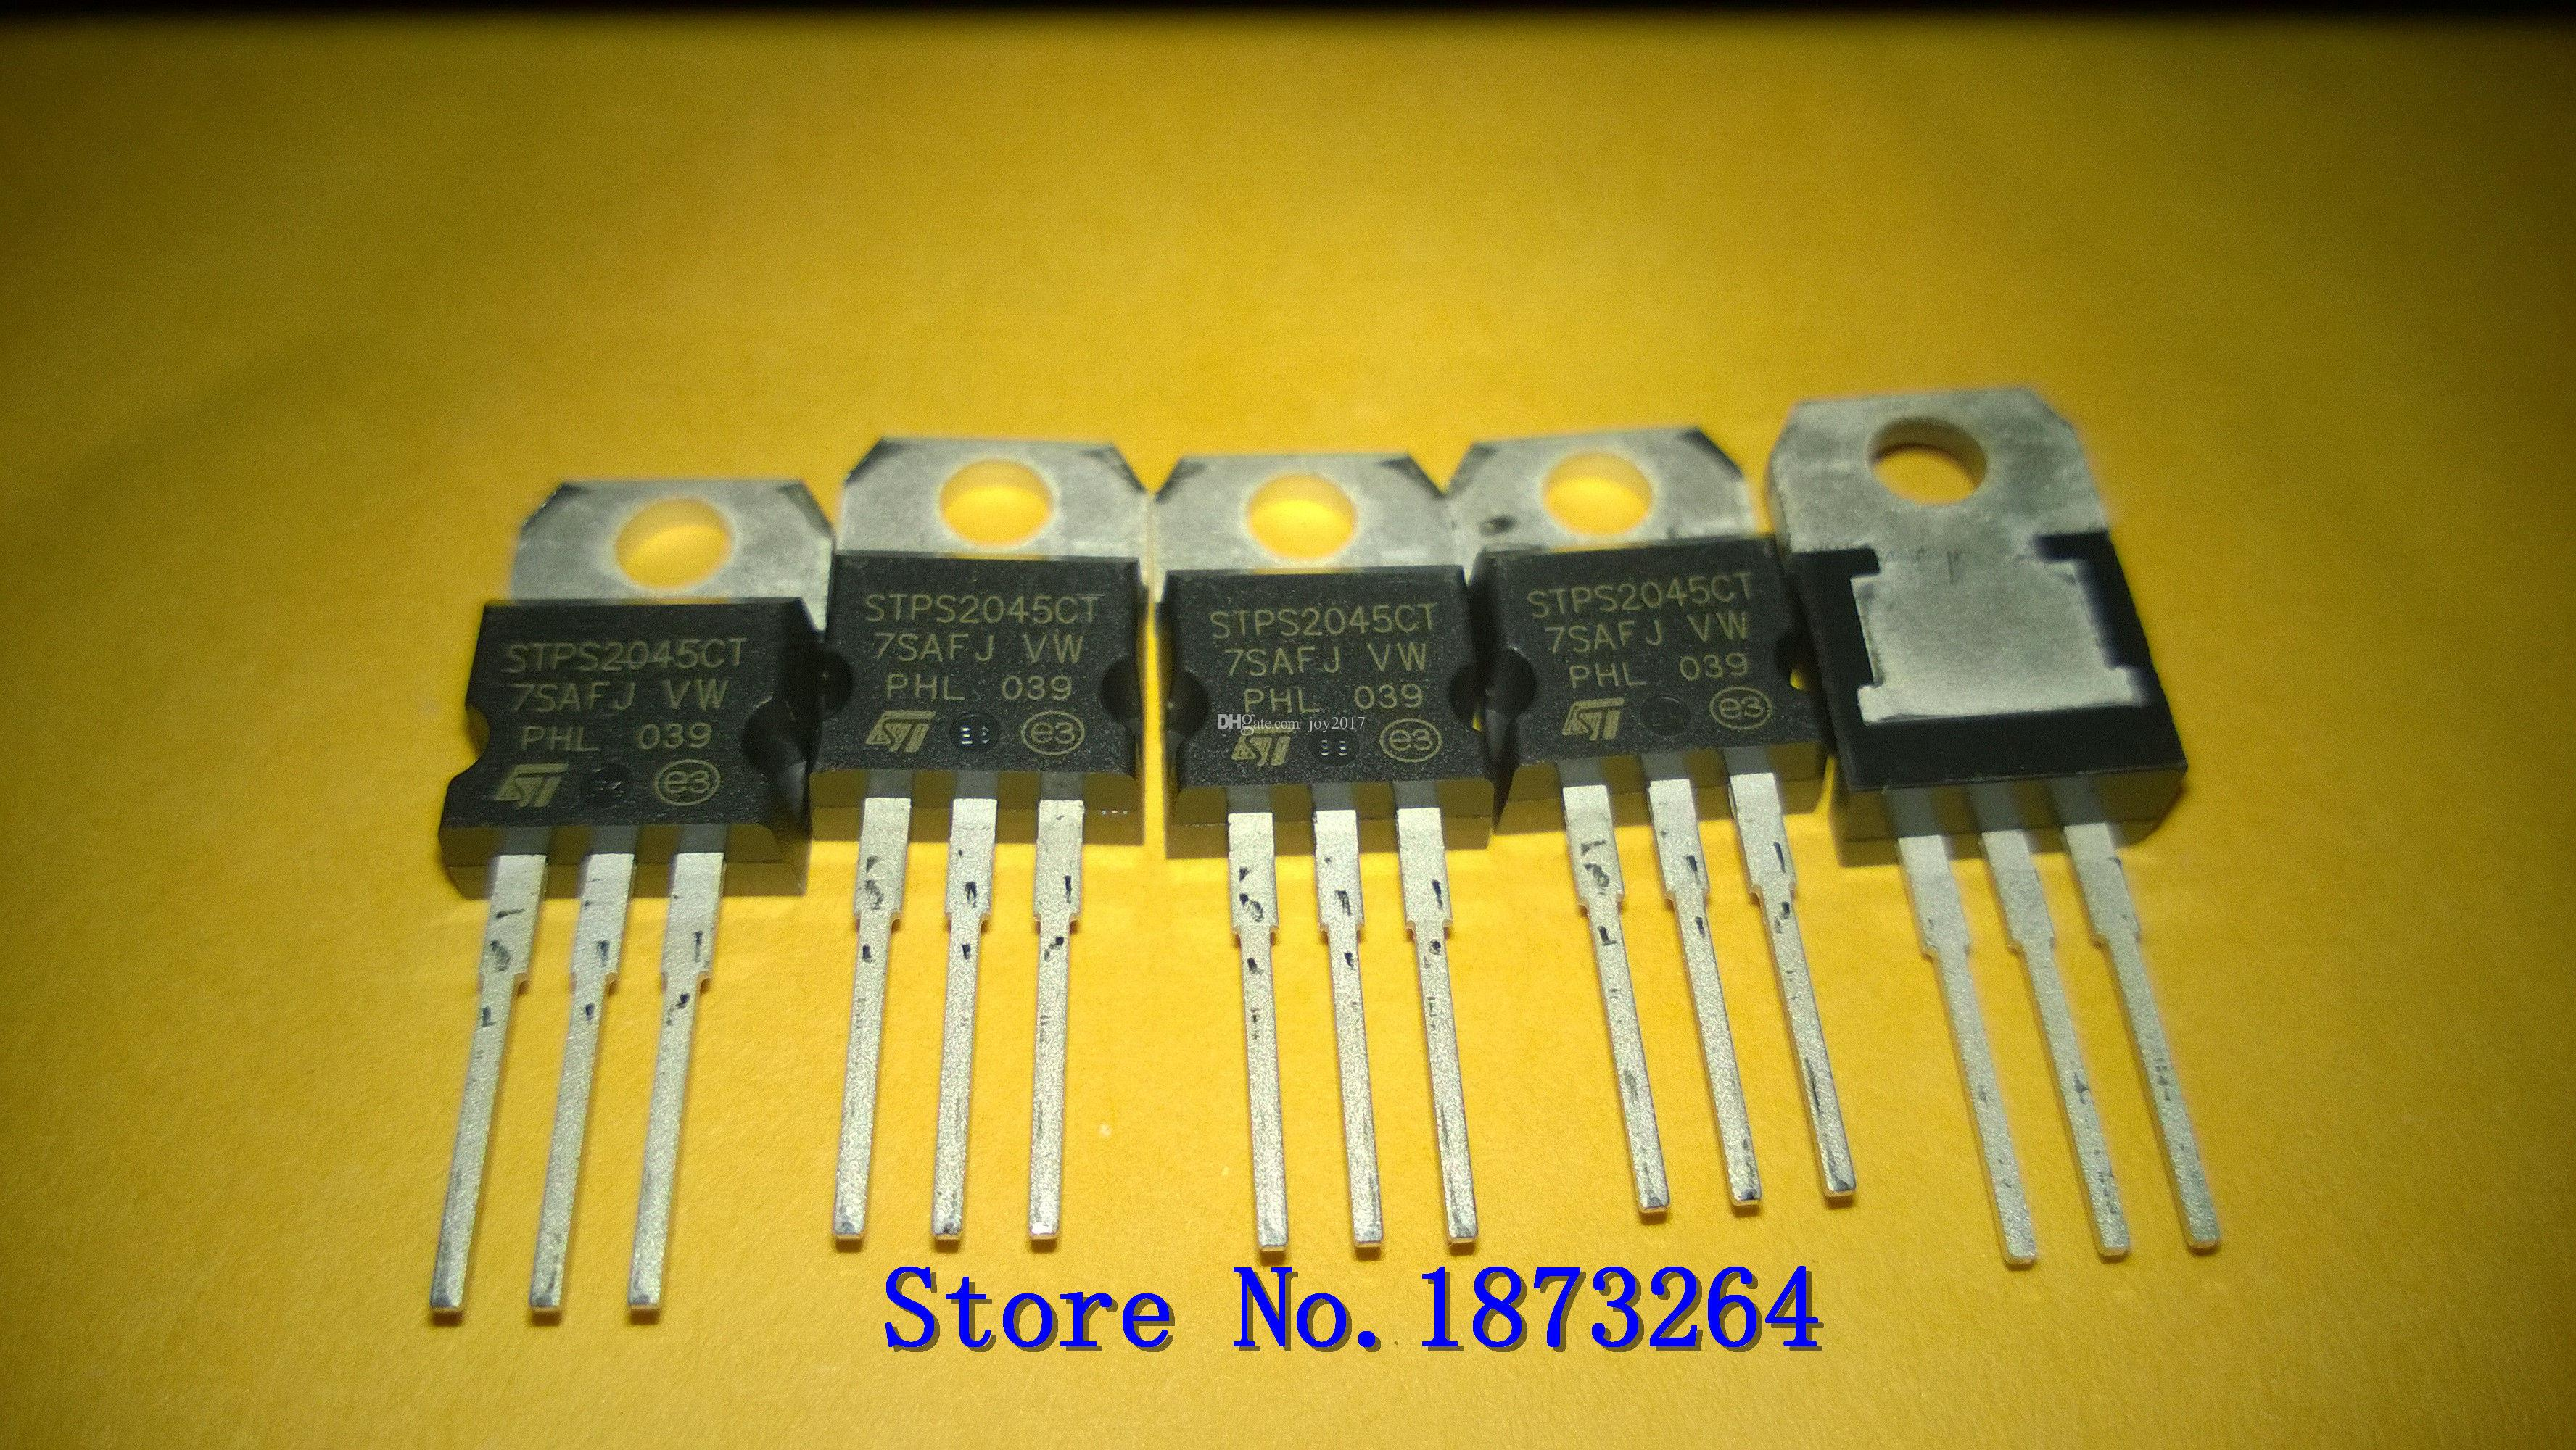 a 500 KFTB High Load Resistor 500kΩ Radial bedrahtet TO-220 TRU components TCP20S